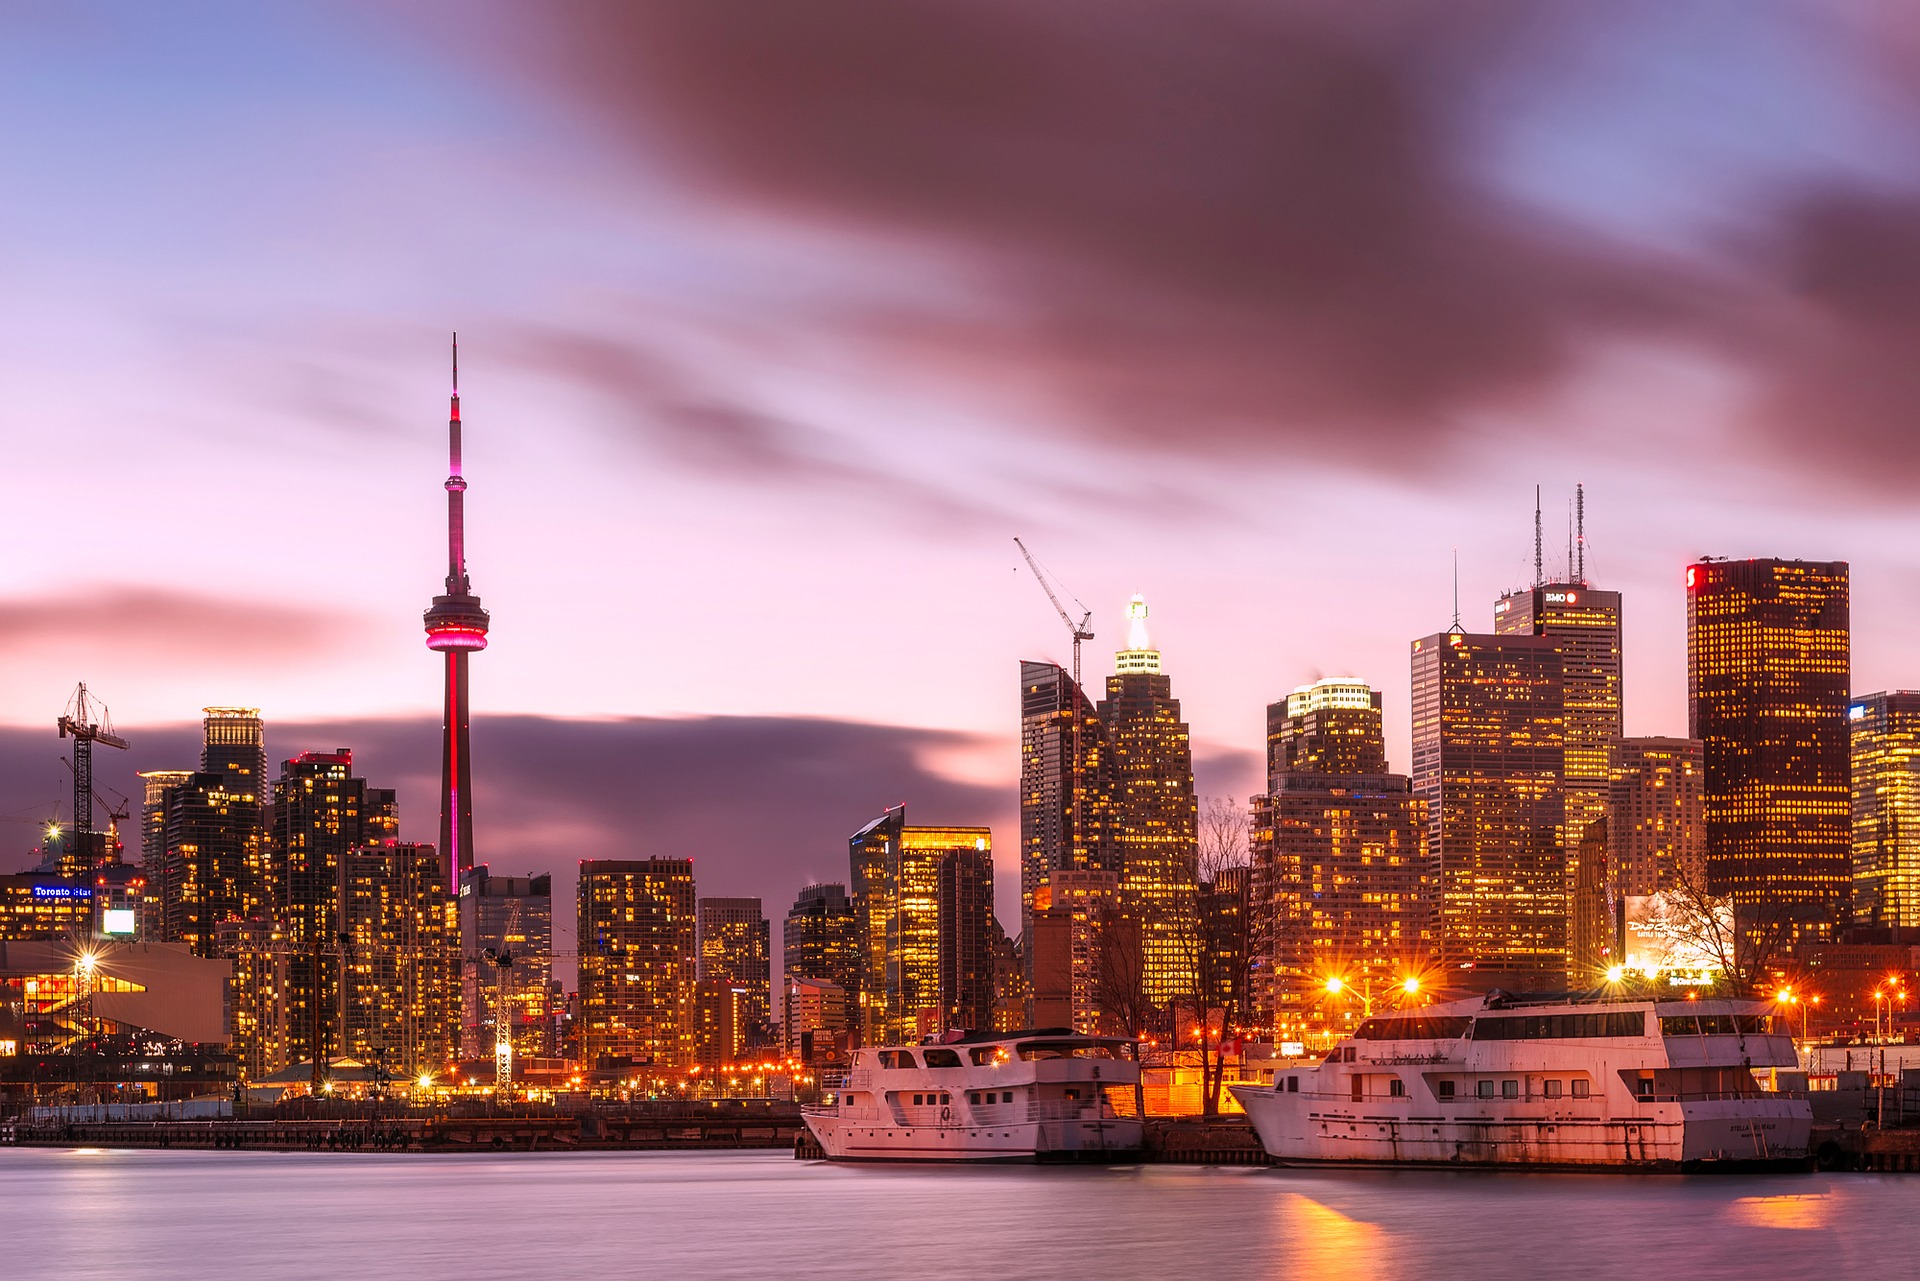 Evening View of Toronto from Lake